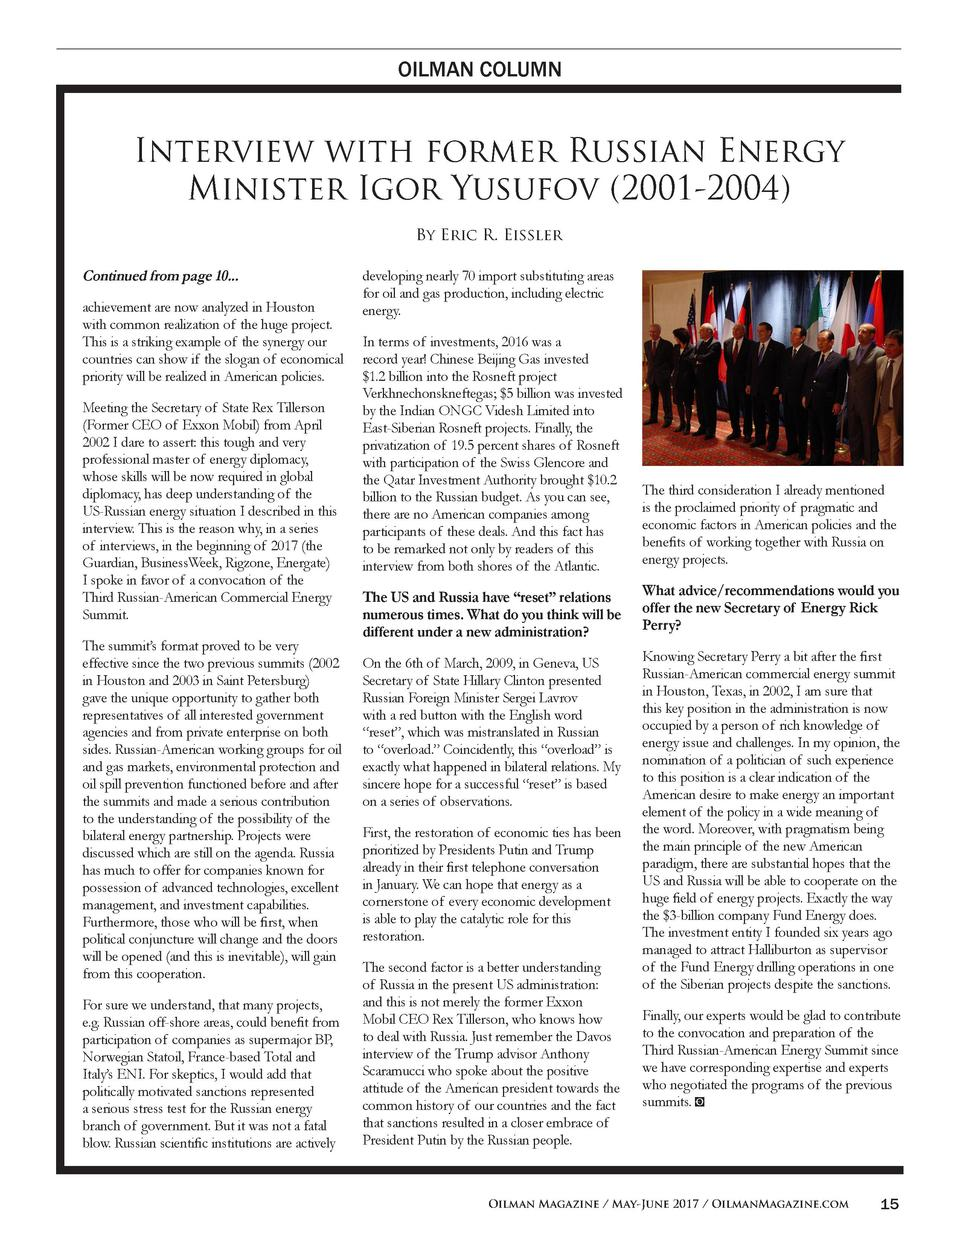 OILMAN COLUMN  Interview with former Russian Energy Minister Igor Yusufov  2001-2004  By Eric R. Eissler  Continued from p...